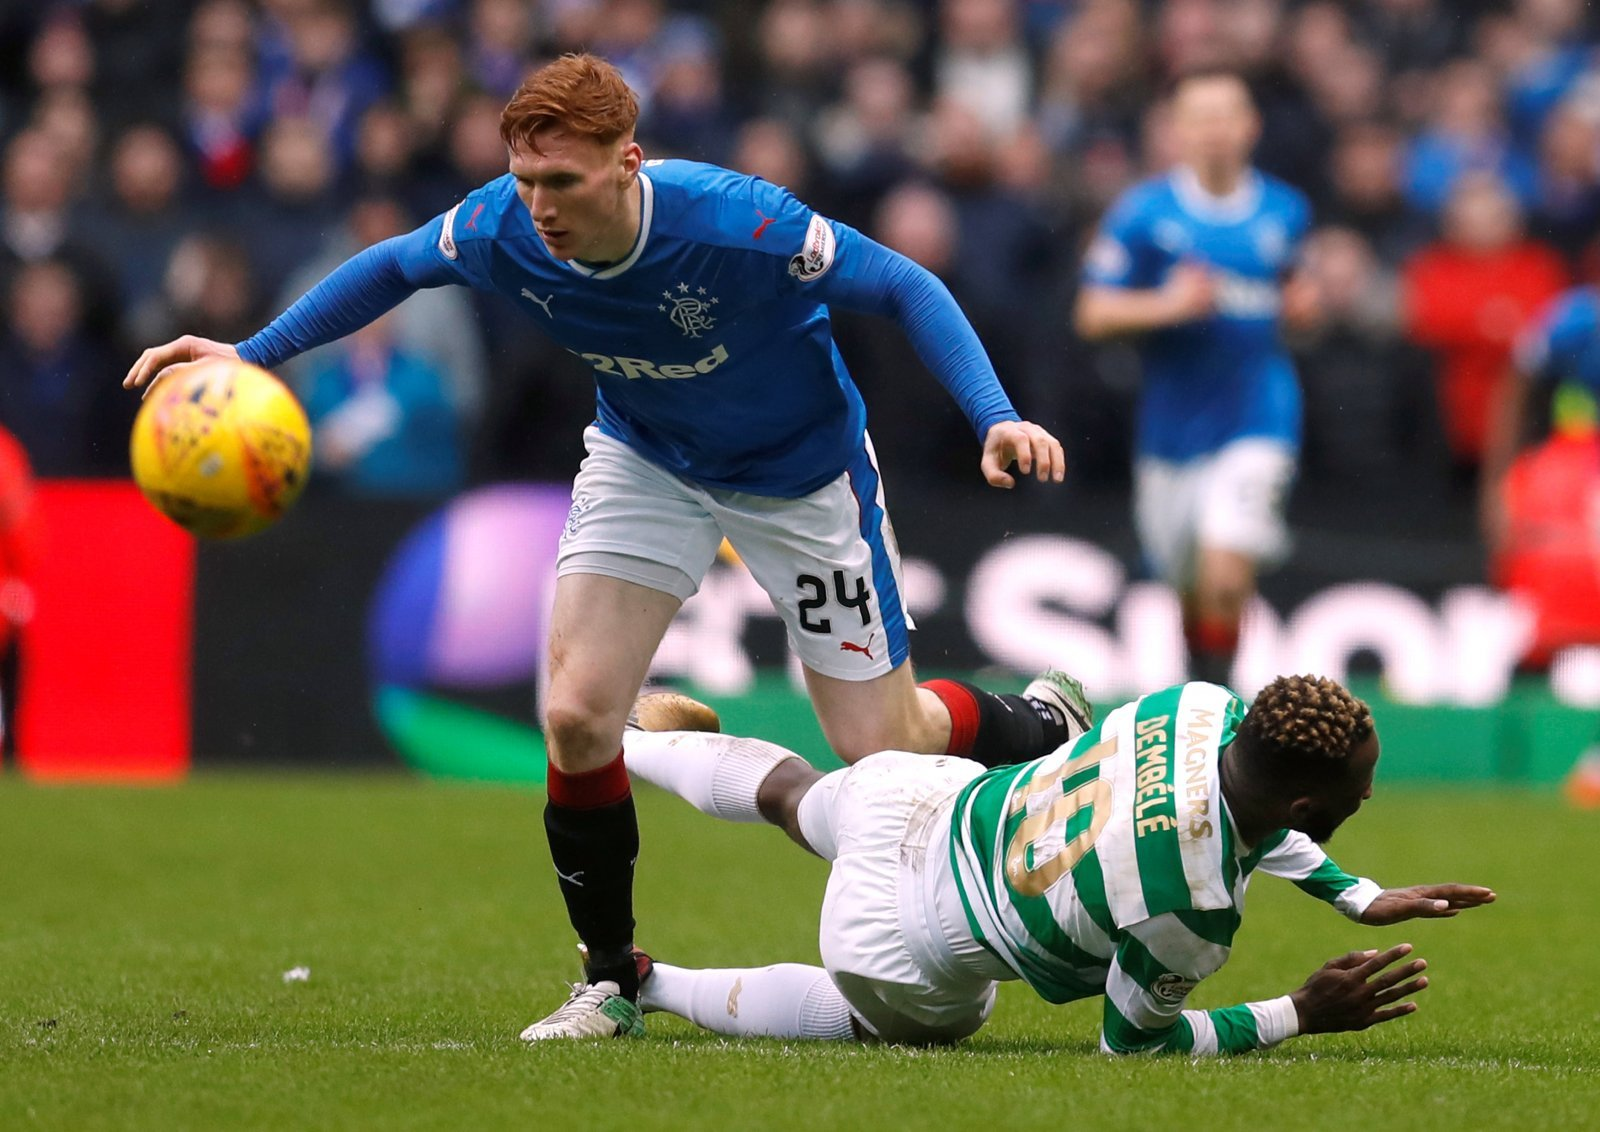 Reported Leicester interest in David Bates makes absolutely no sense at all